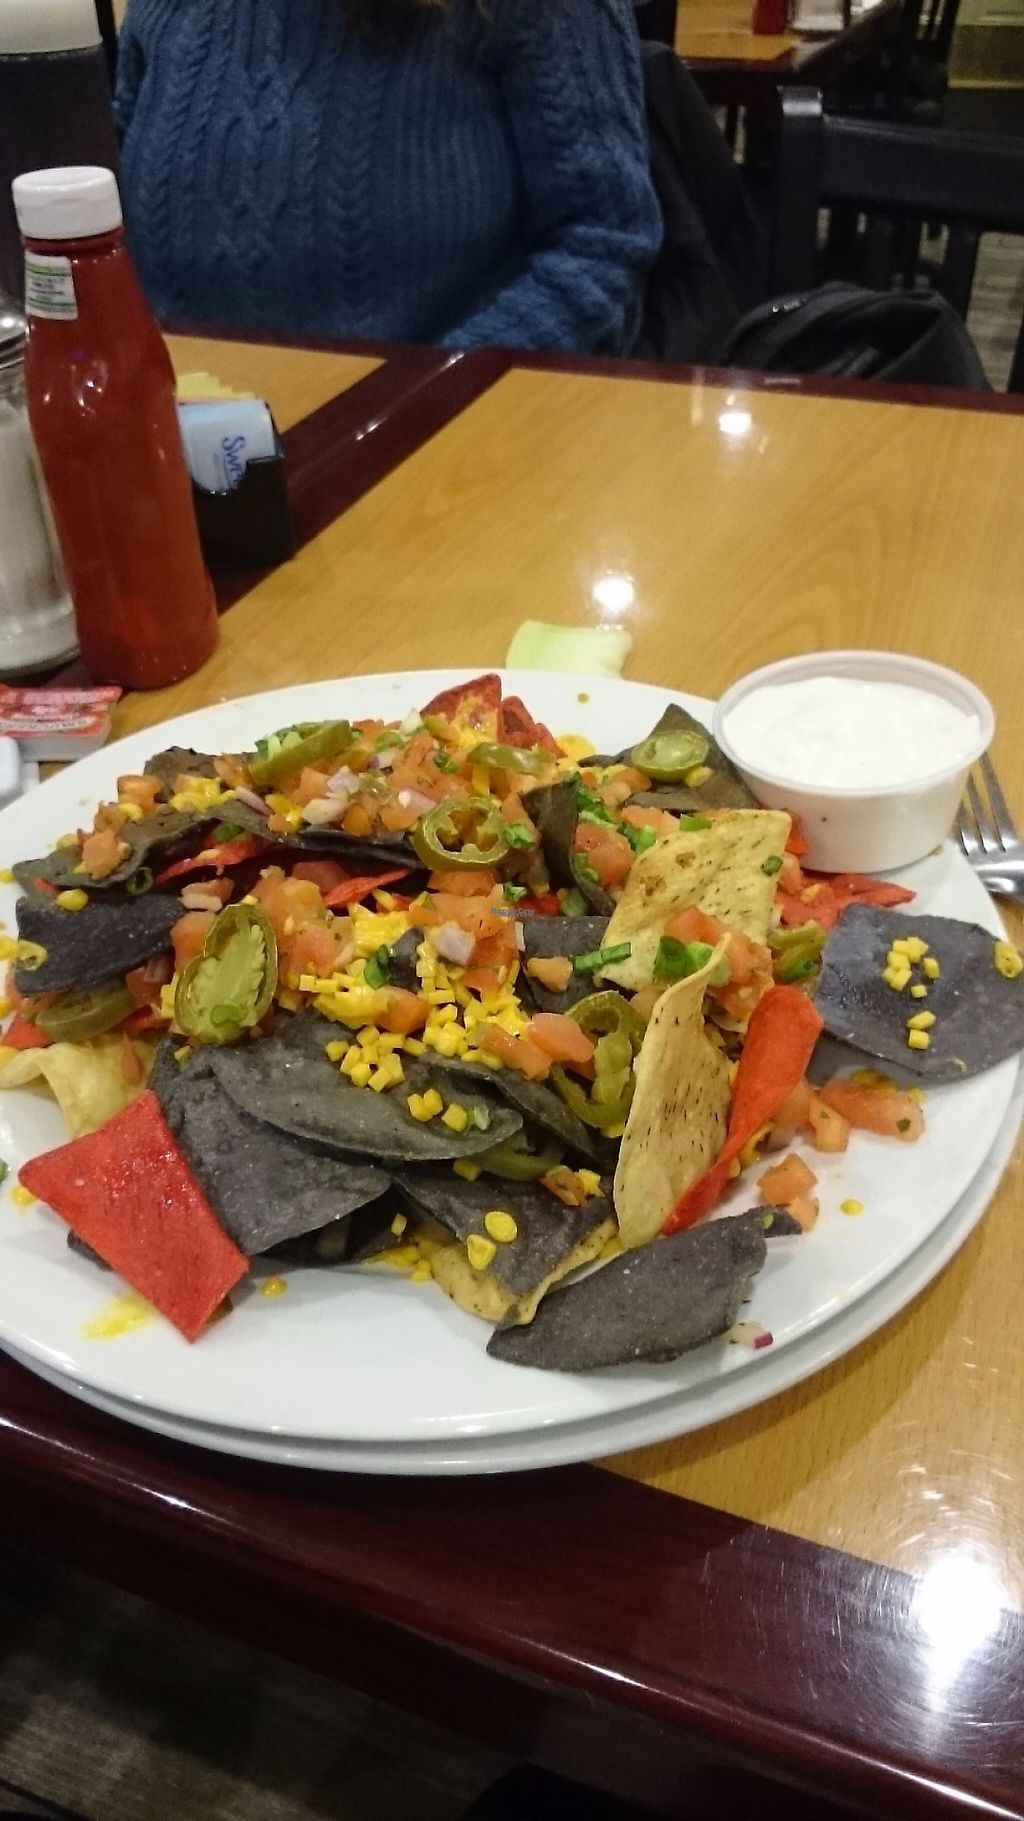 "Photo of Frankie's on Fairview  by <a href=""/members/profile/ZoraySpielvogel"">ZoraySpielvogel</a> <br/>Nachos  <br/> March 30, 2017  - <a href='/contact/abuse/image/56280/242832'>Report</a>"